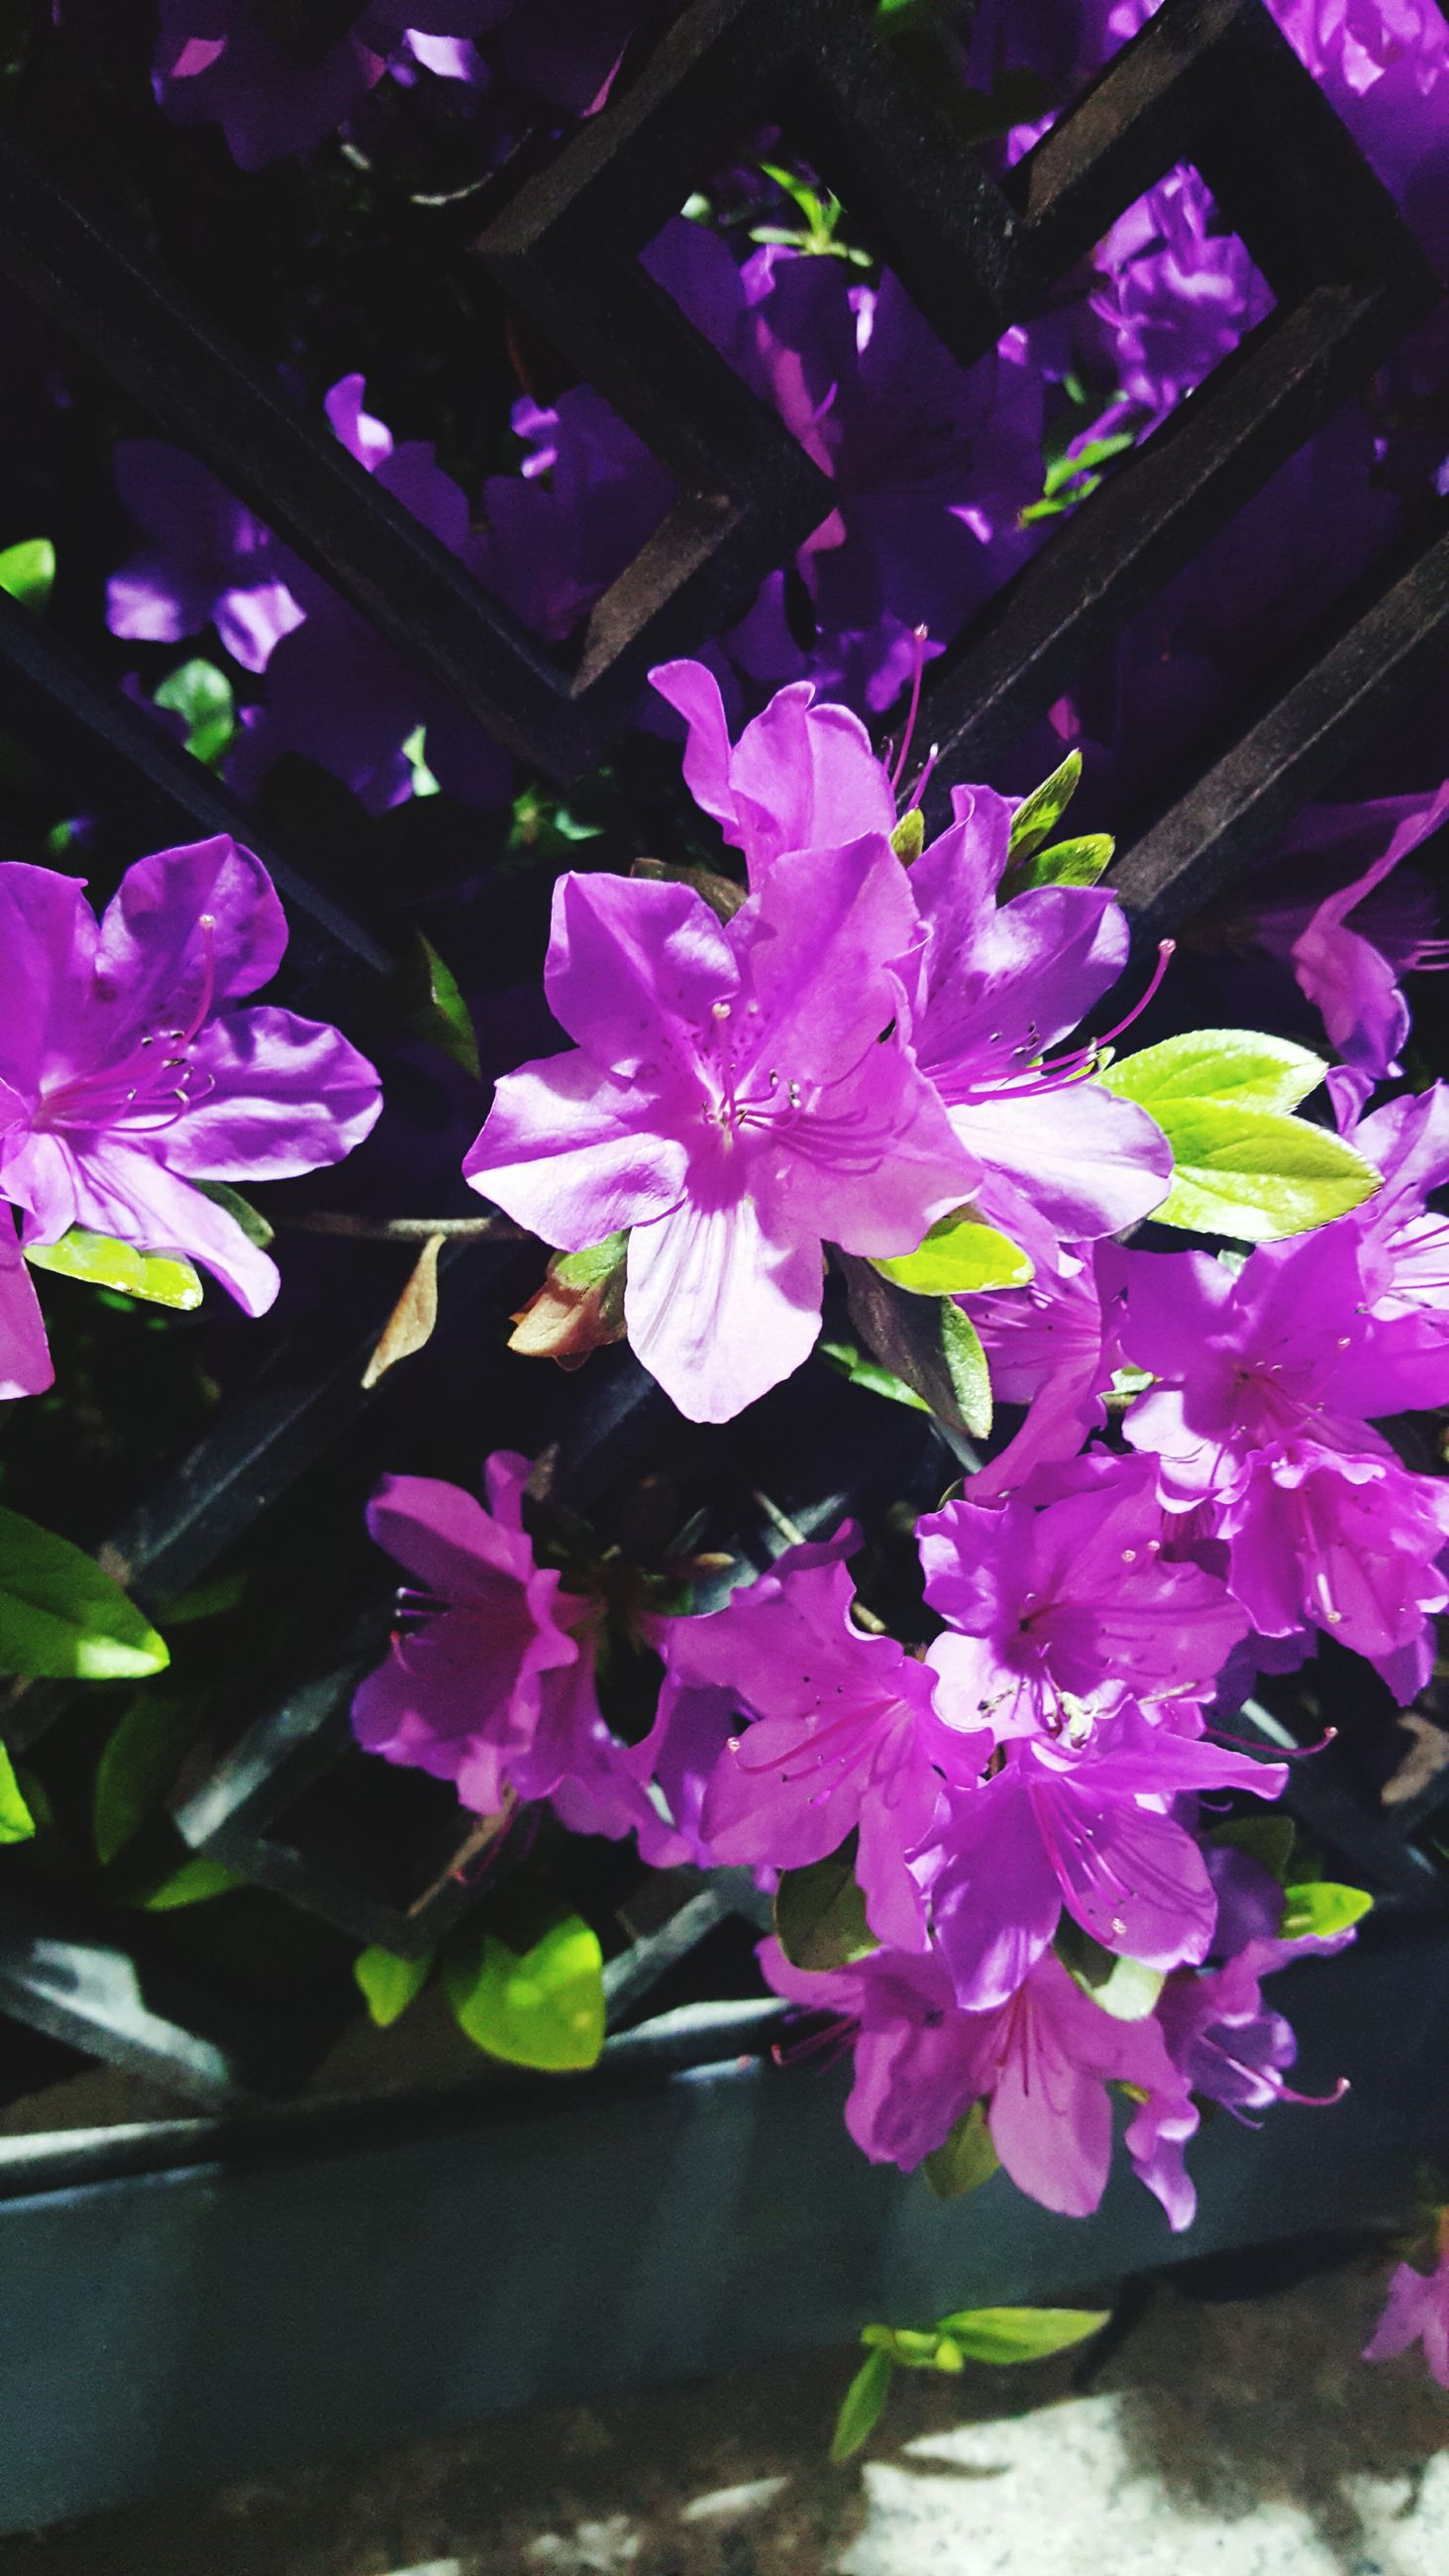 flower, freshness, petal, fragility, growth, purple, pink color, beauty in nature, flower head, plant, leaf, nature, blooming, close-up, in bloom, potted plant, high angle view, no people, outdoors, day